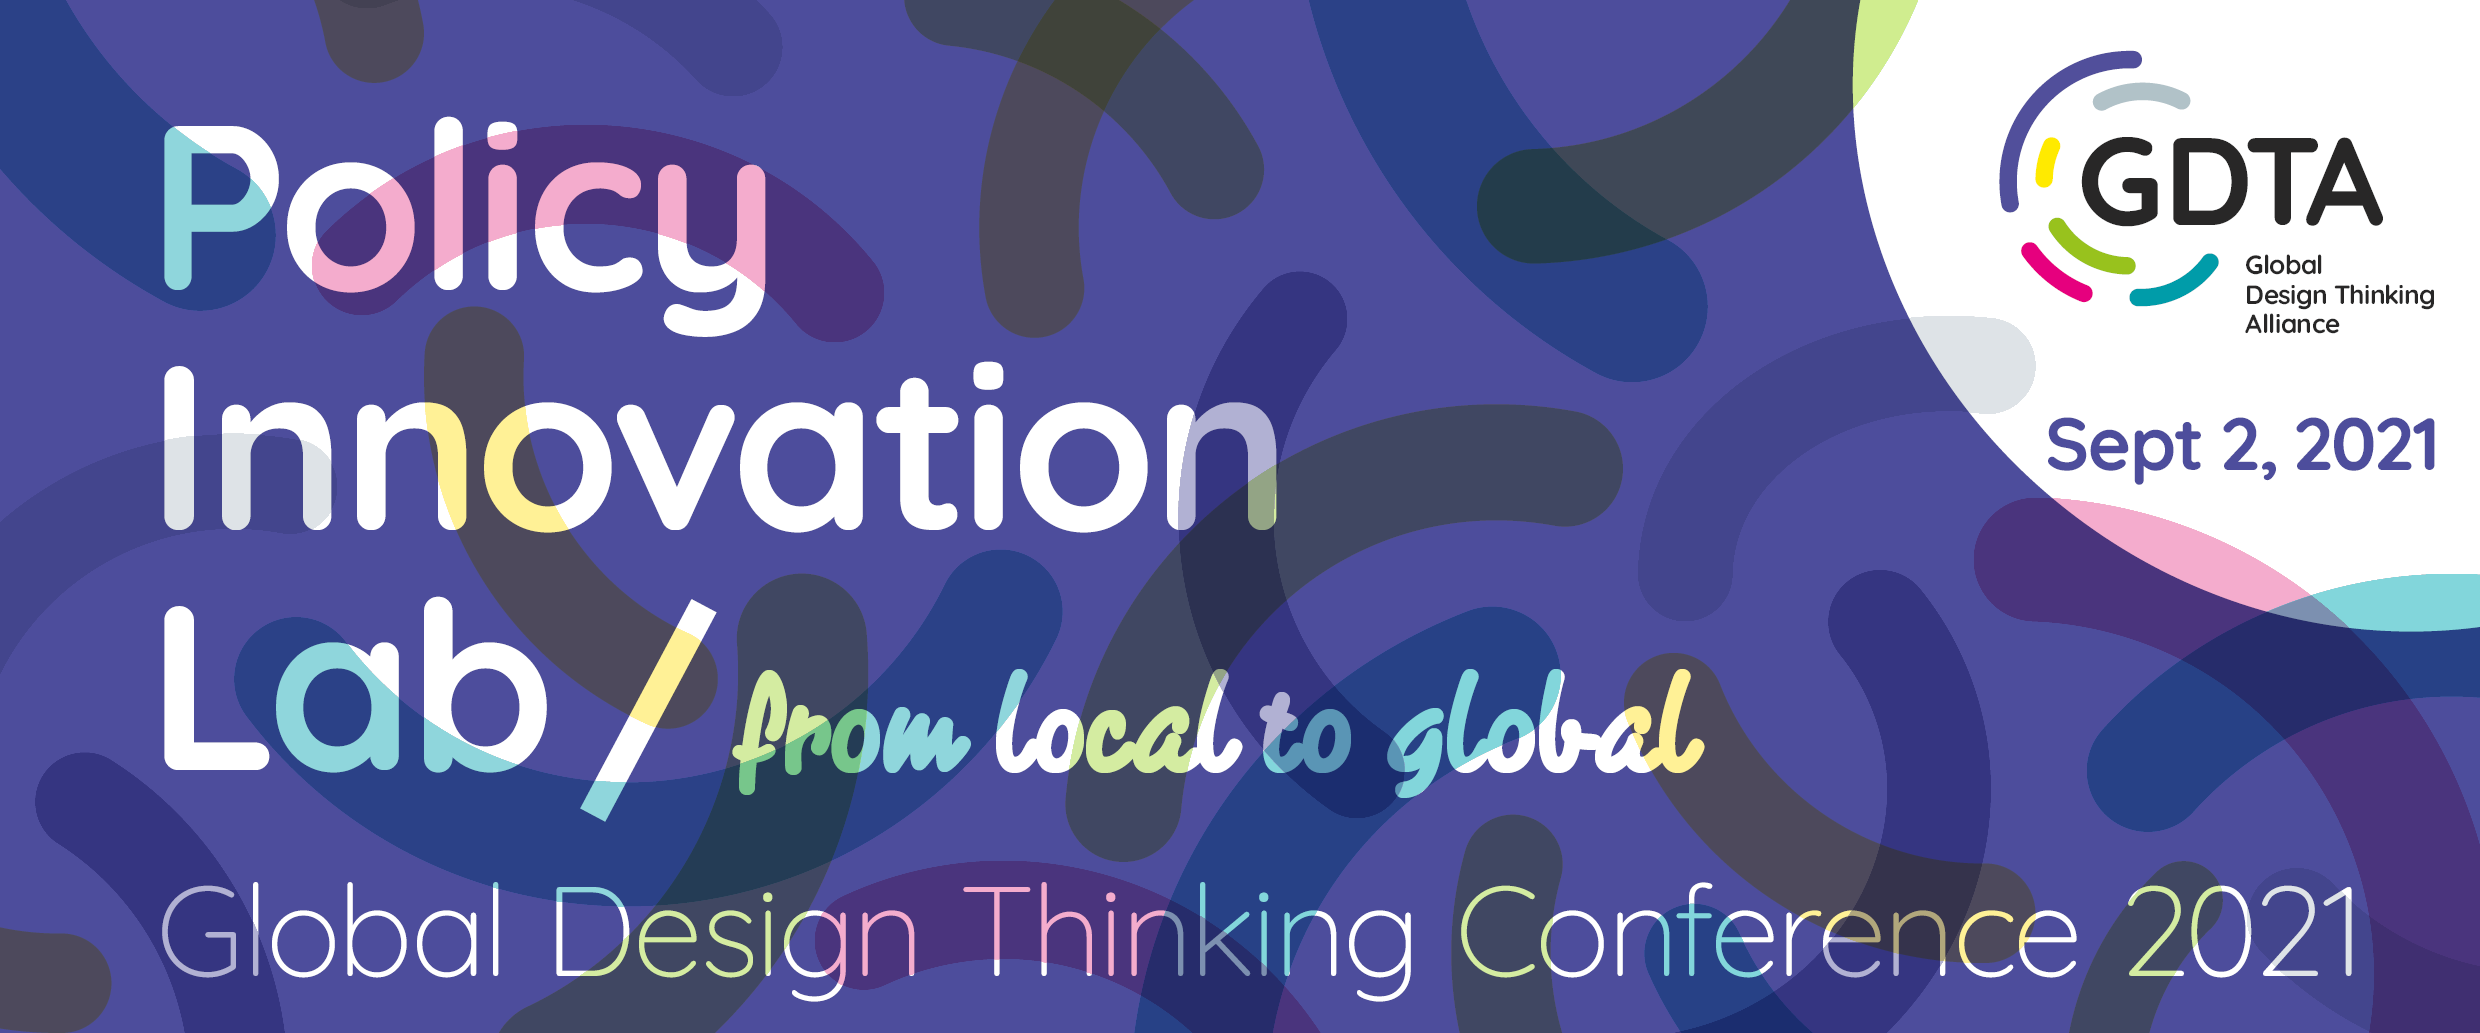 Global Design Thinking Conference 2021